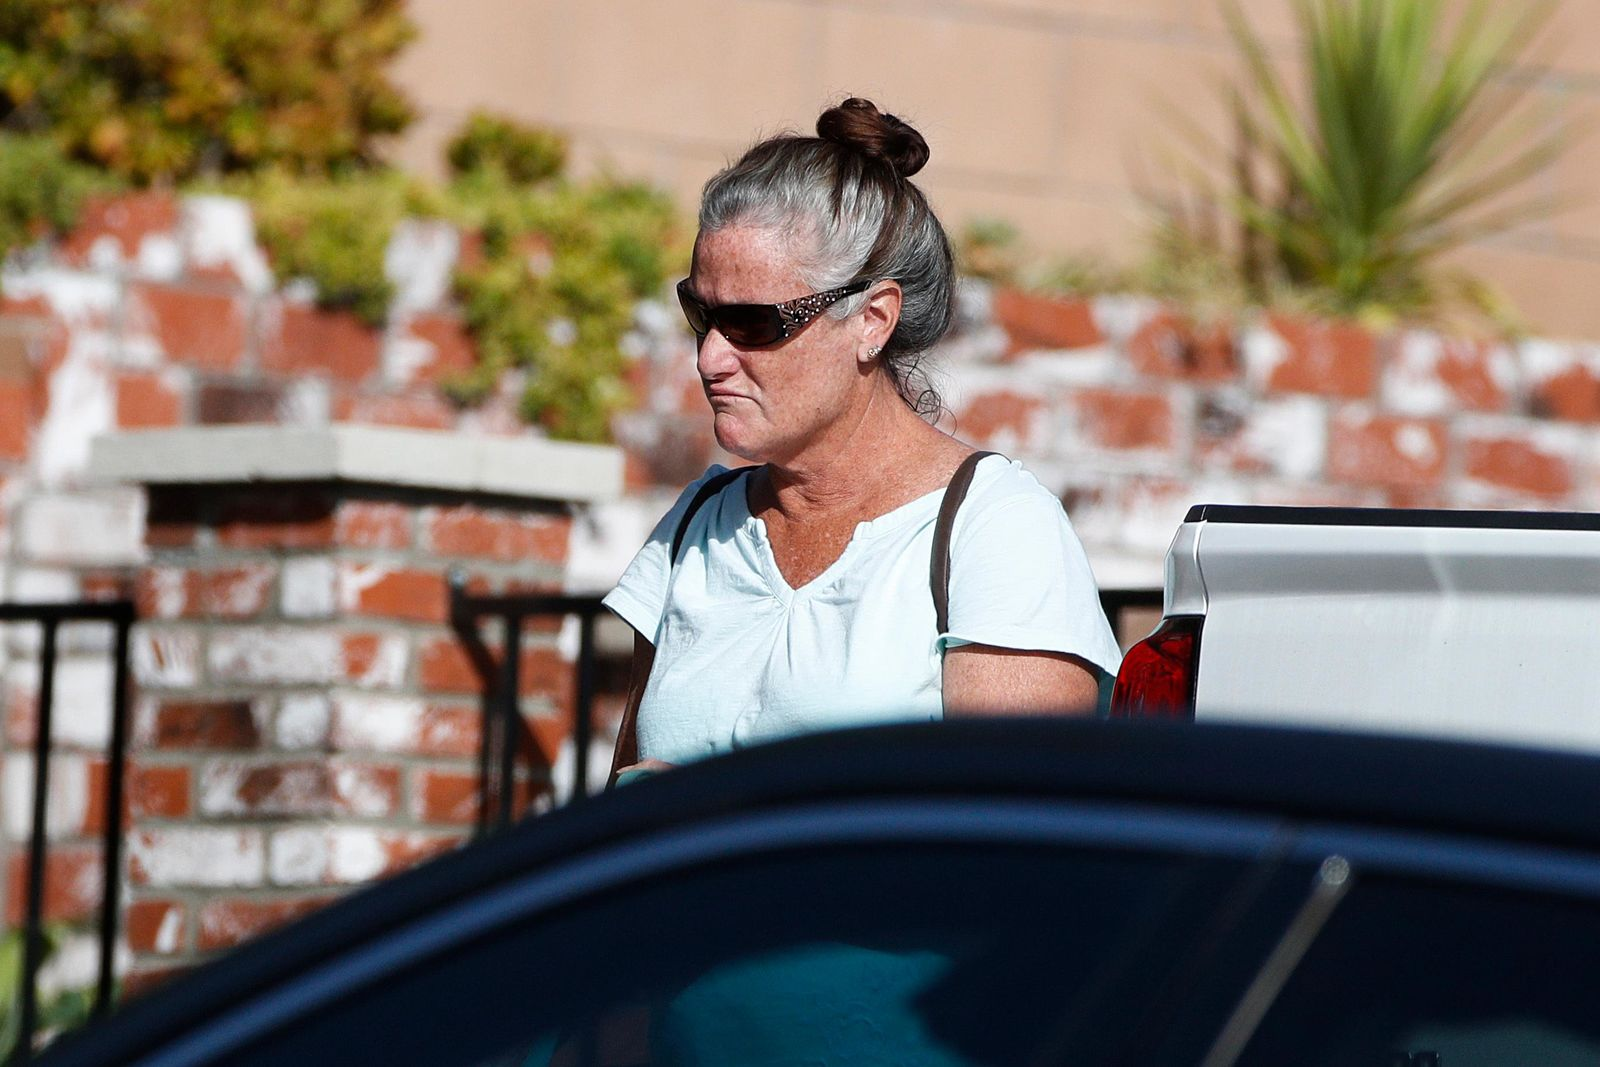 Colleen Long, mother of shooting suspect David Ian Long, leaves her house in Newbury Park, Calif., on Thursday, Nov. 8, 2018. (AP Photo/Jae C. Hong)